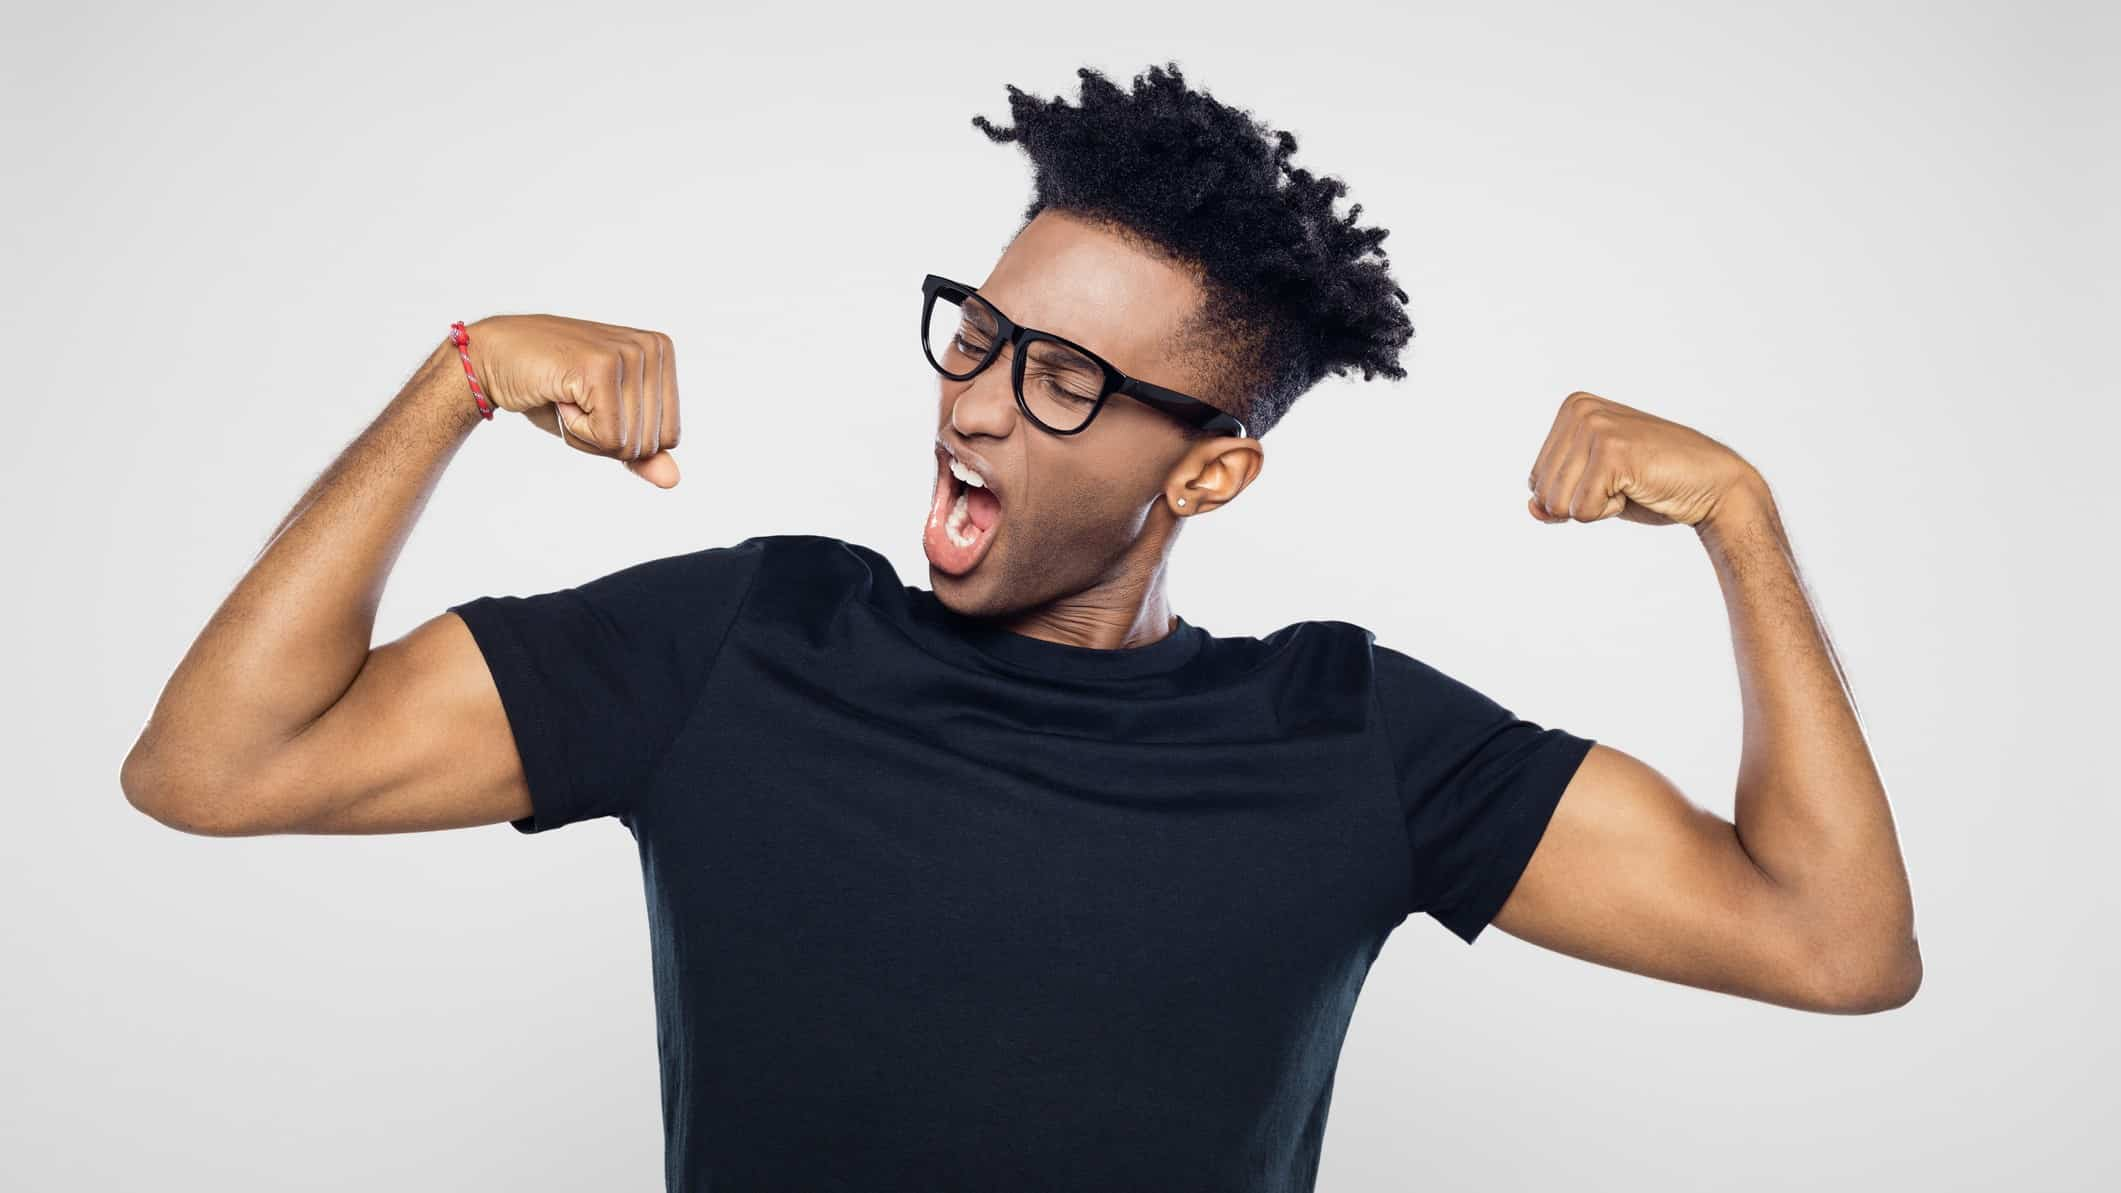 A fit man flexes his muscles, indicating a positive share price movement on the ASX market